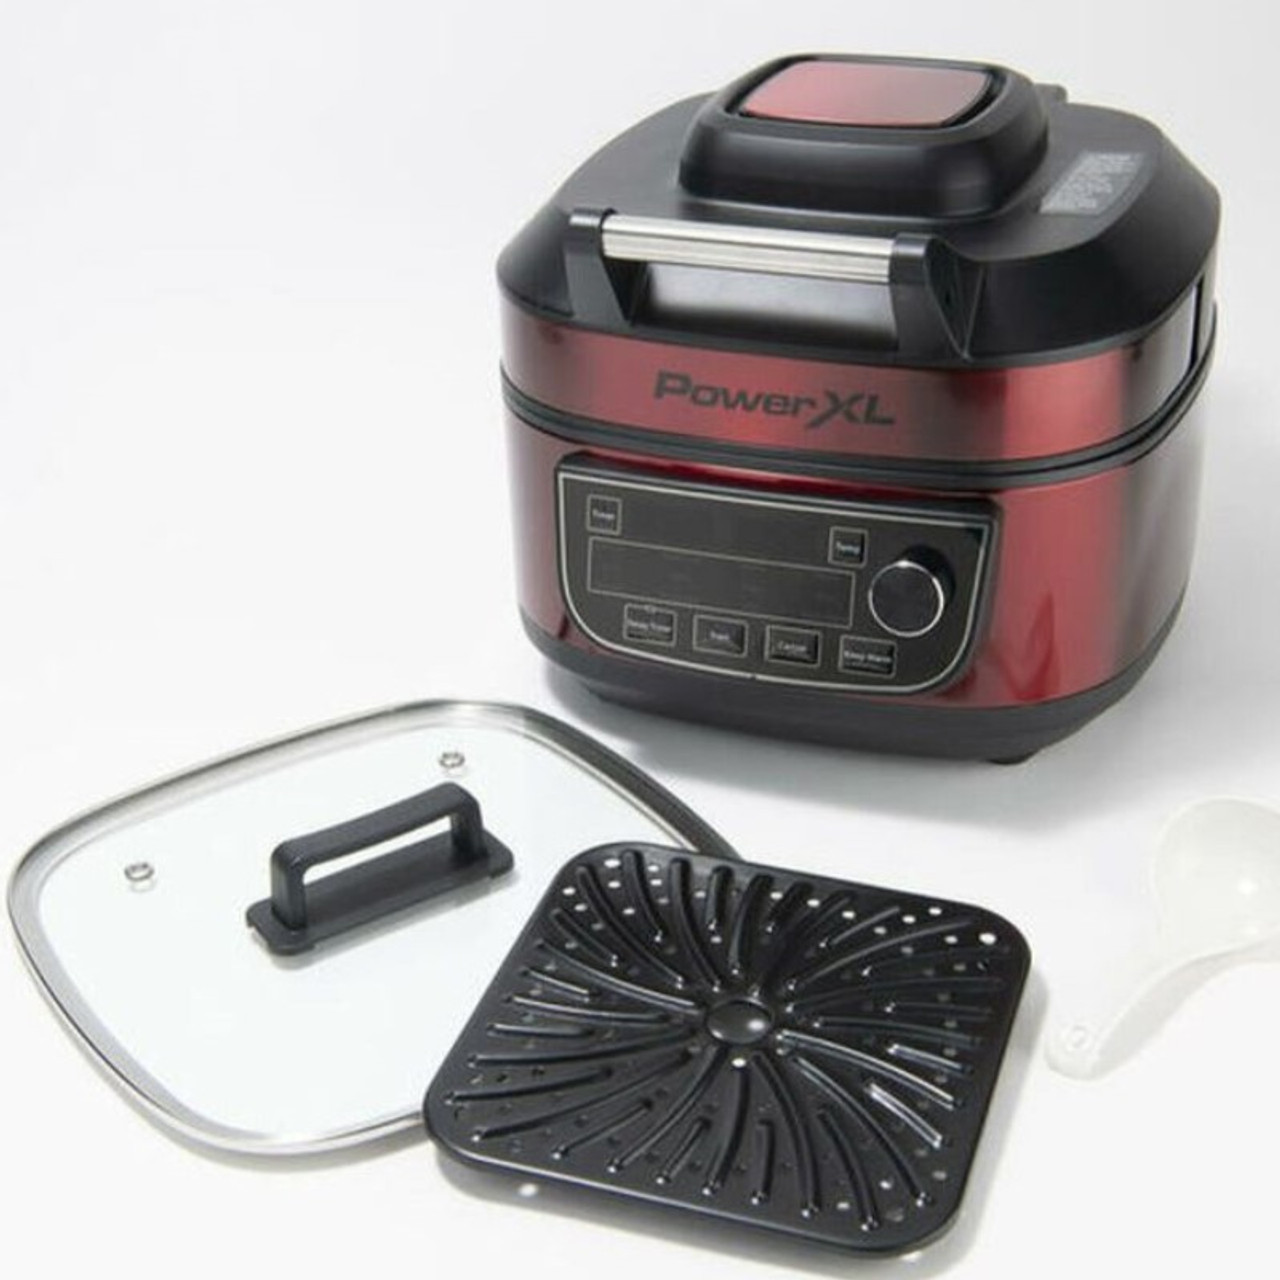 PowerXL 1550W 6-qt 12-in-1 Grill Air Fryer Combo with Glass Lid